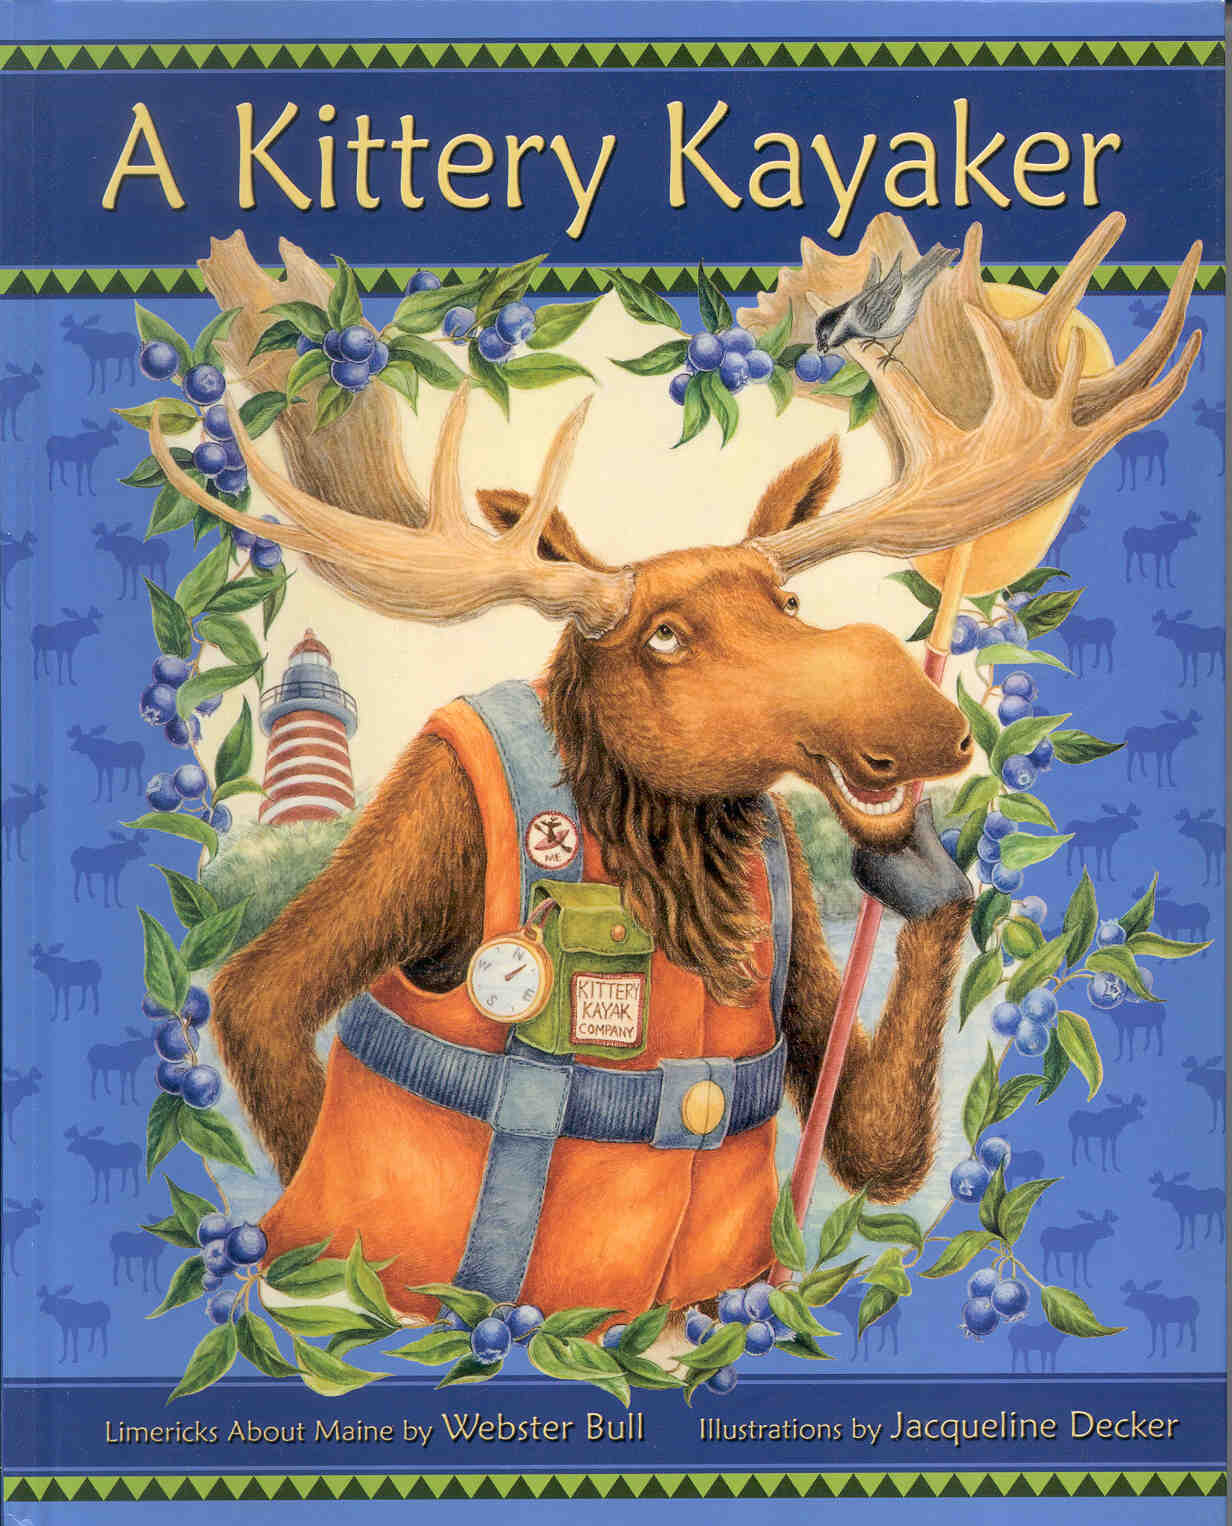 Image of the book cover A Kittery Kayaker